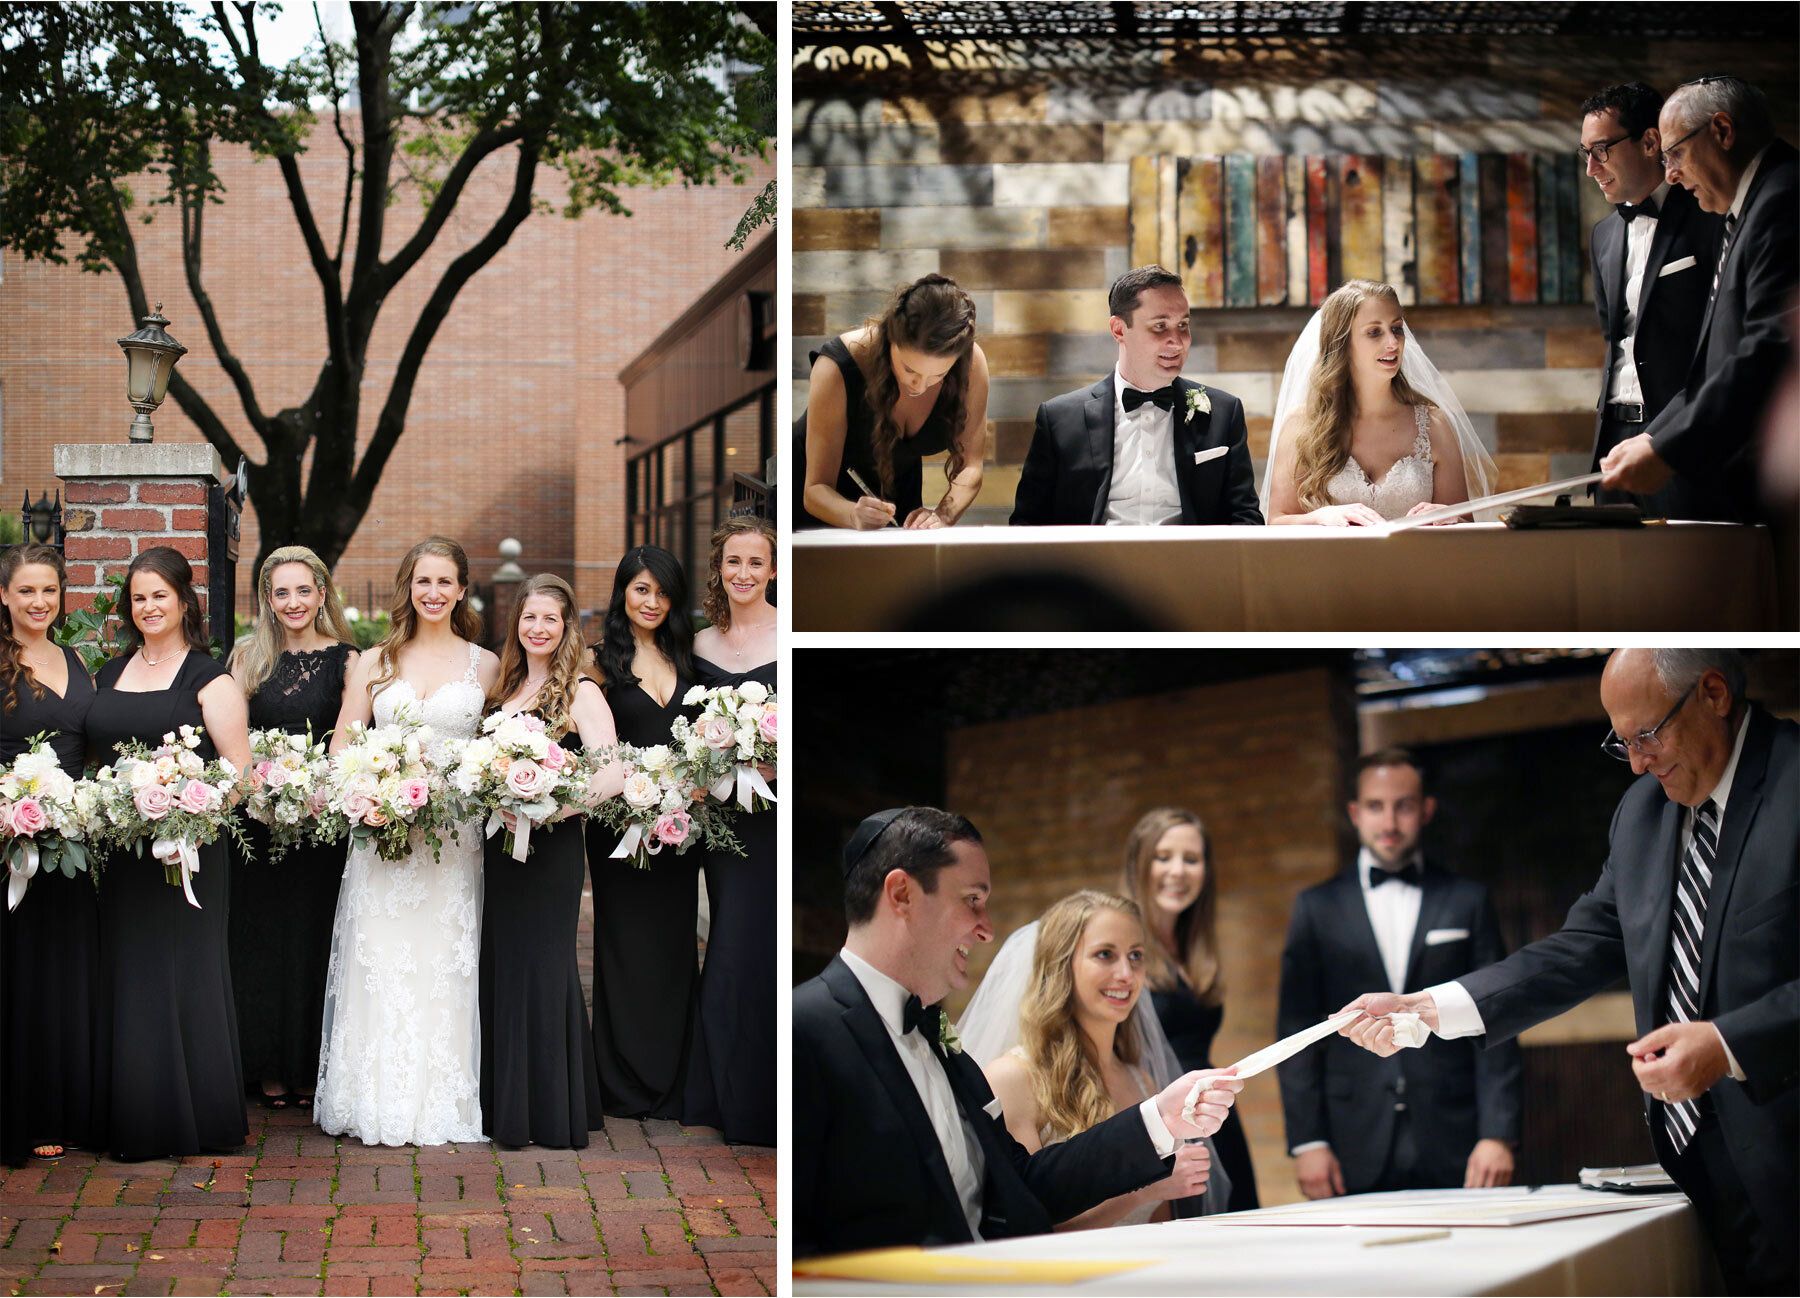 10-Minnesota-Wedding-Vick-Photography-Minneapolis-Event-Centers-Bride-Groom-Bridesmaids-Jewish-Ceremony-Amy-and-Avi.jpg